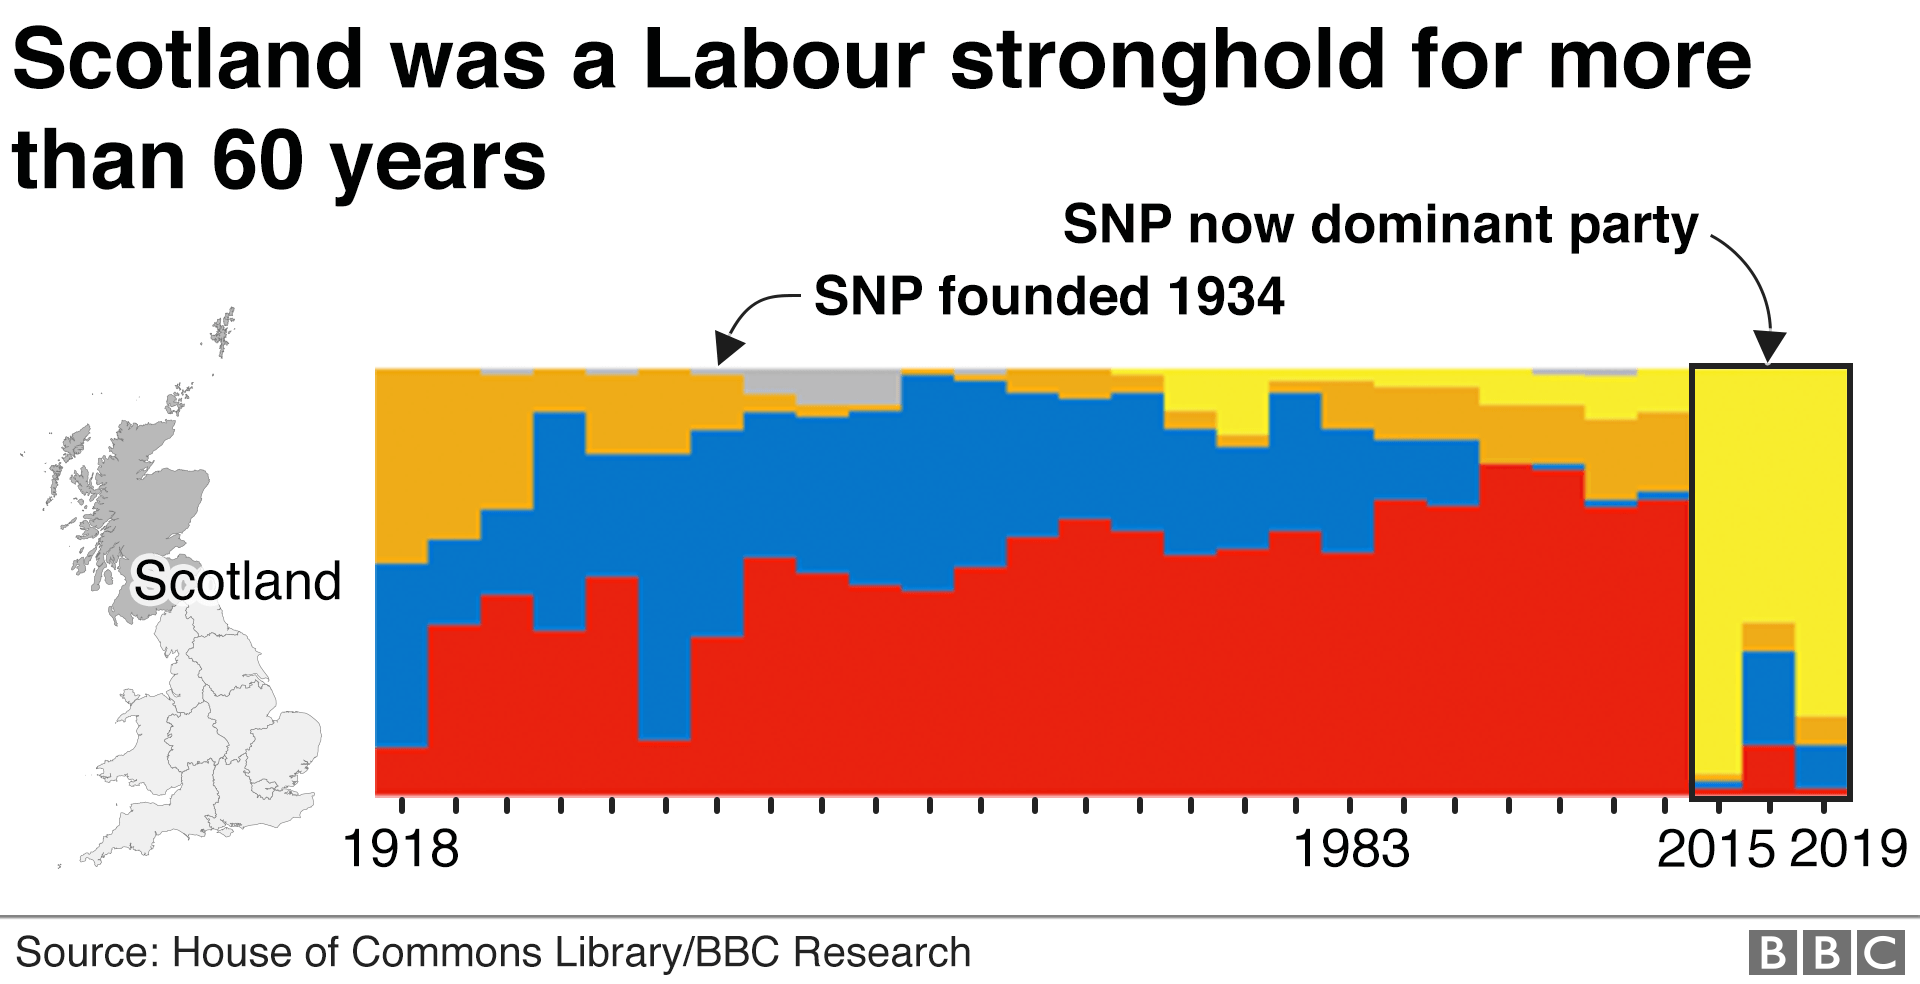 Chart showing general elections in Scotland since 1918